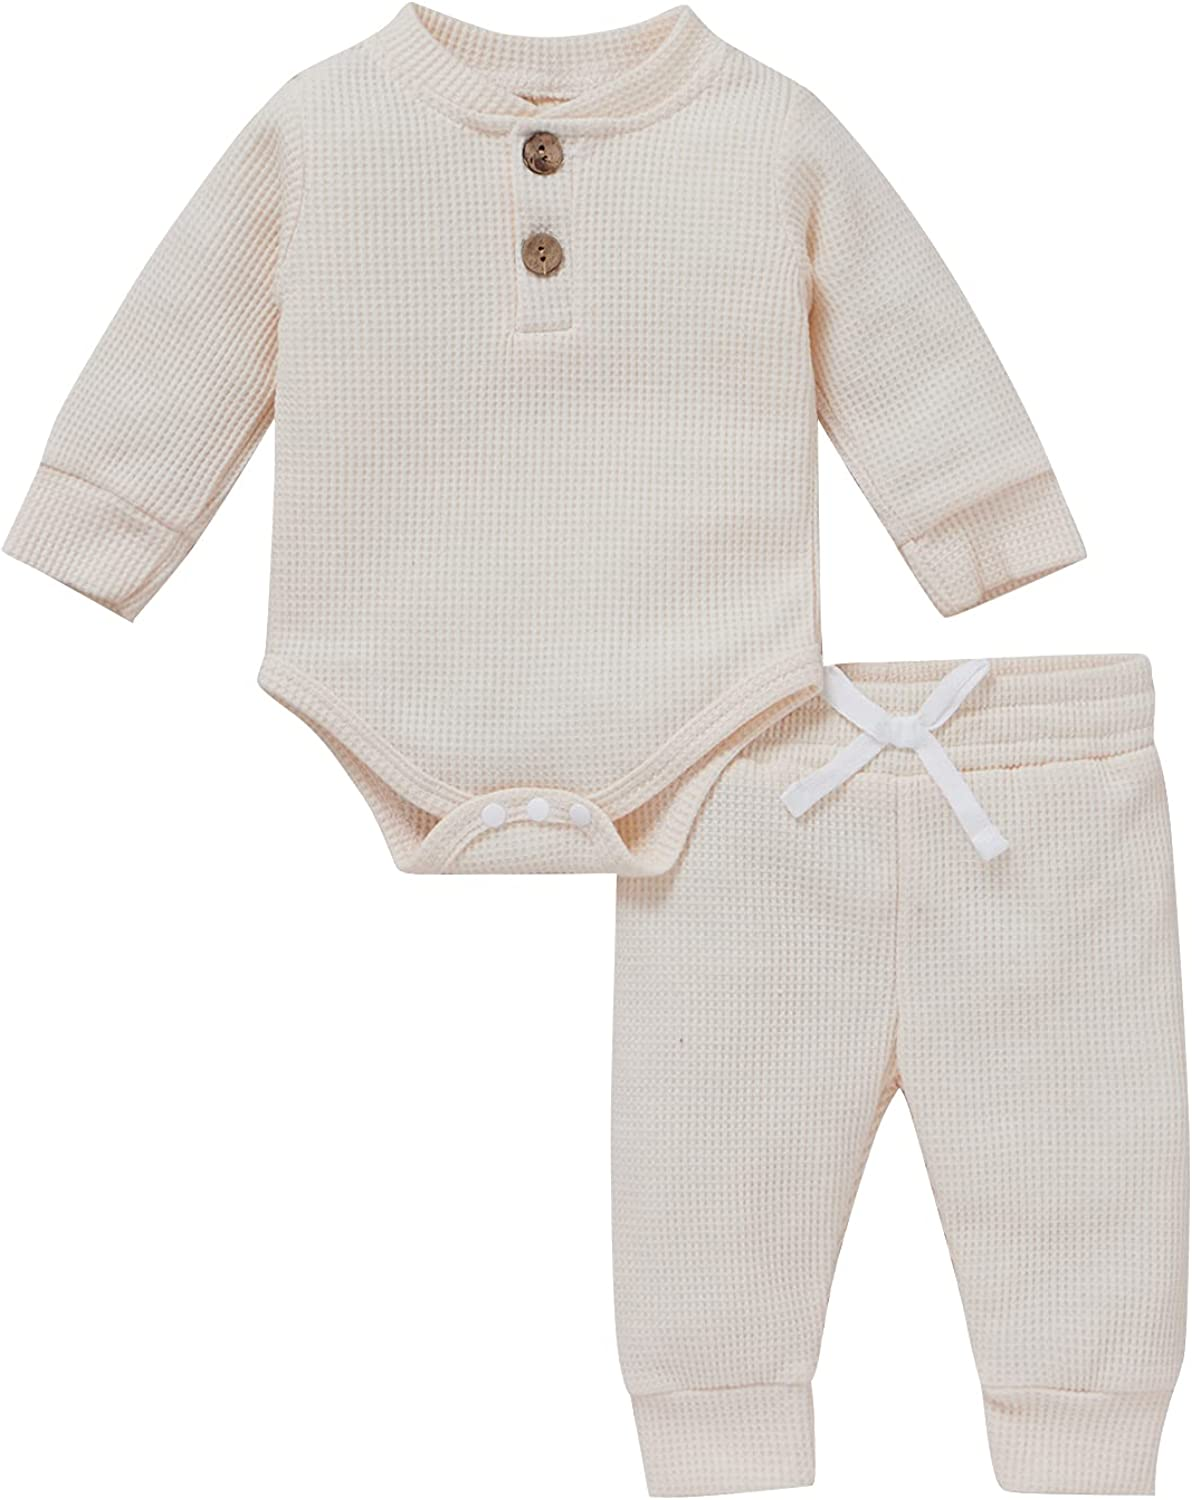 Infant Newborn Baby Boy Girl Clothes Cotton Long Sleeve Jumpsuits+Long Pants Fall Winter Solid Outfits Set